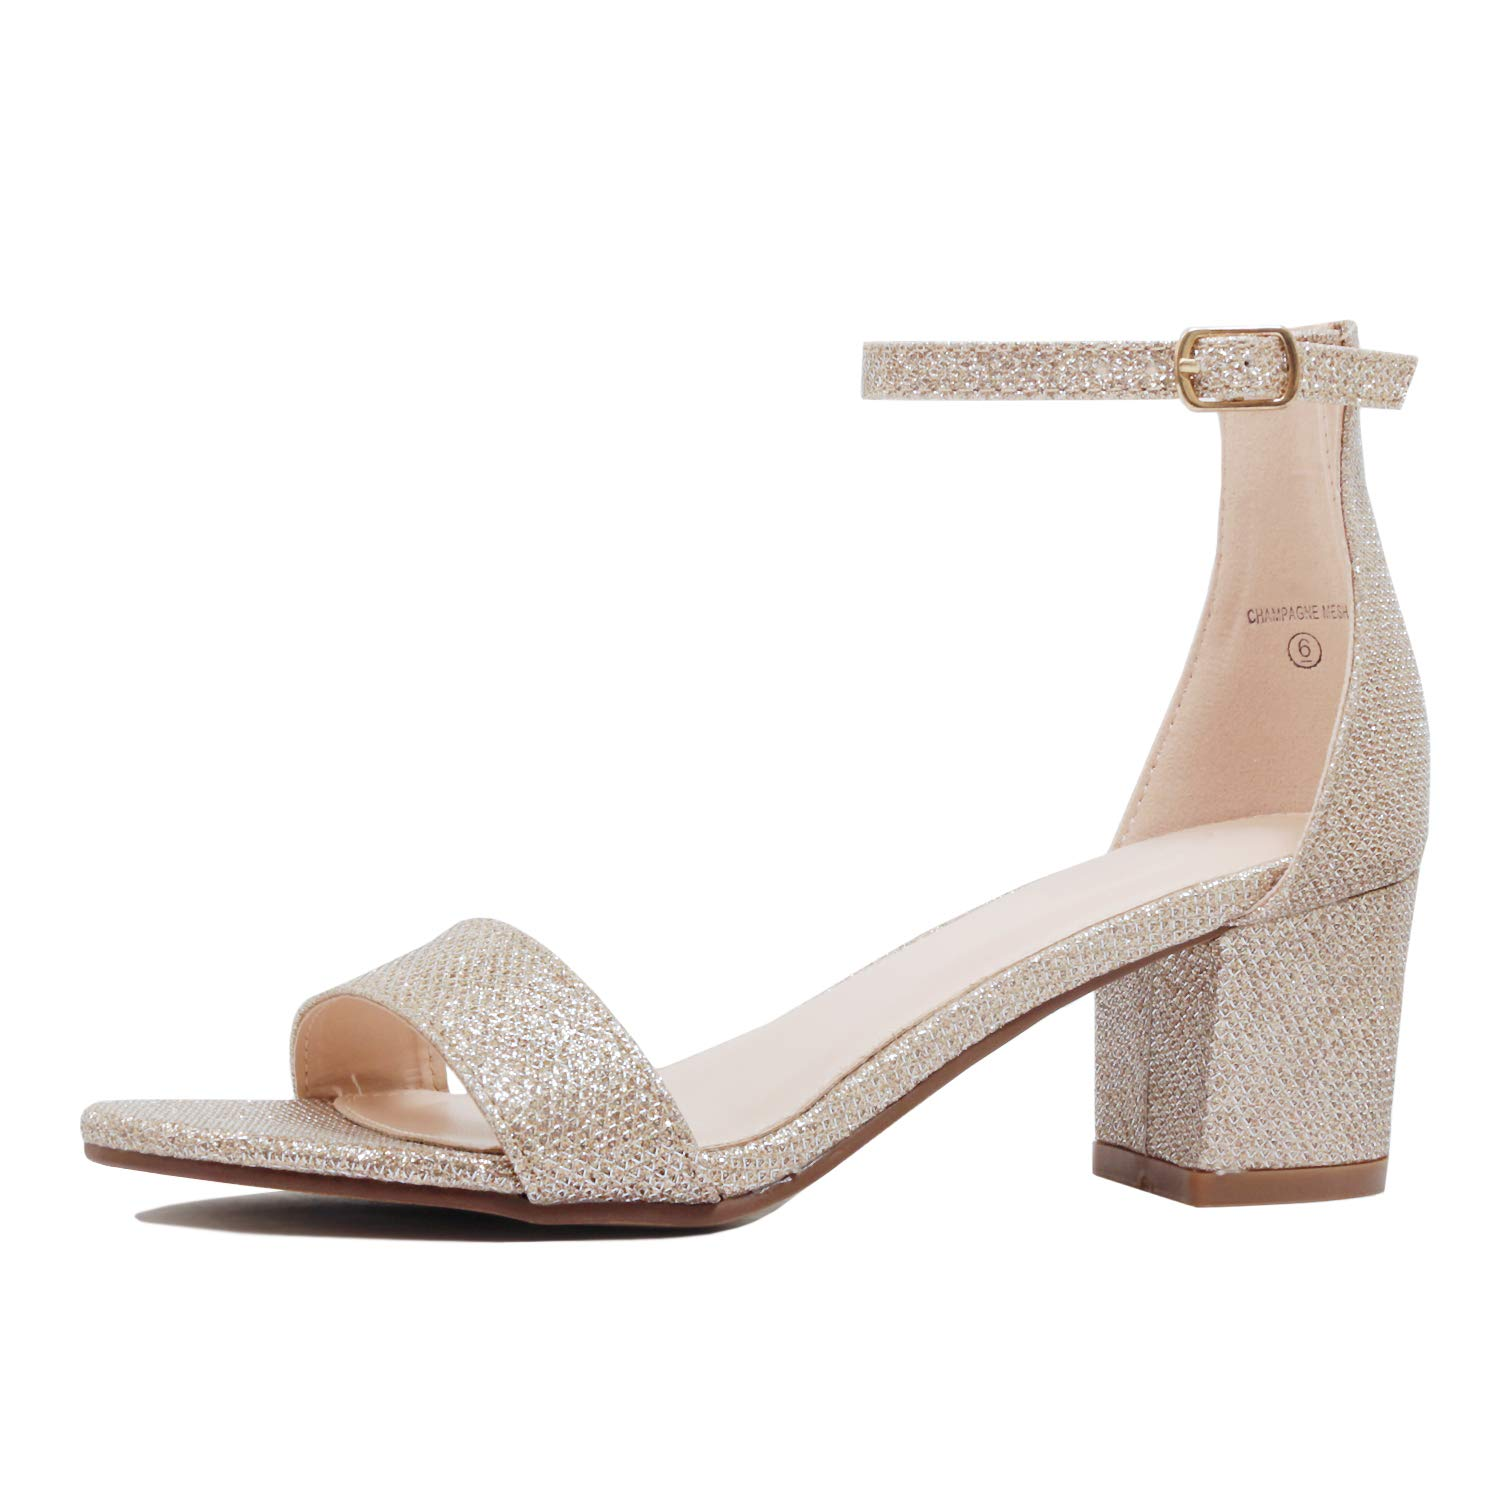 Guilty Shoes - Womens Ankle Strap Single Band Sandals - Low Chunky Block Comfortable Office Heeled Sandals (10 B(M) US, 09 Champagne)